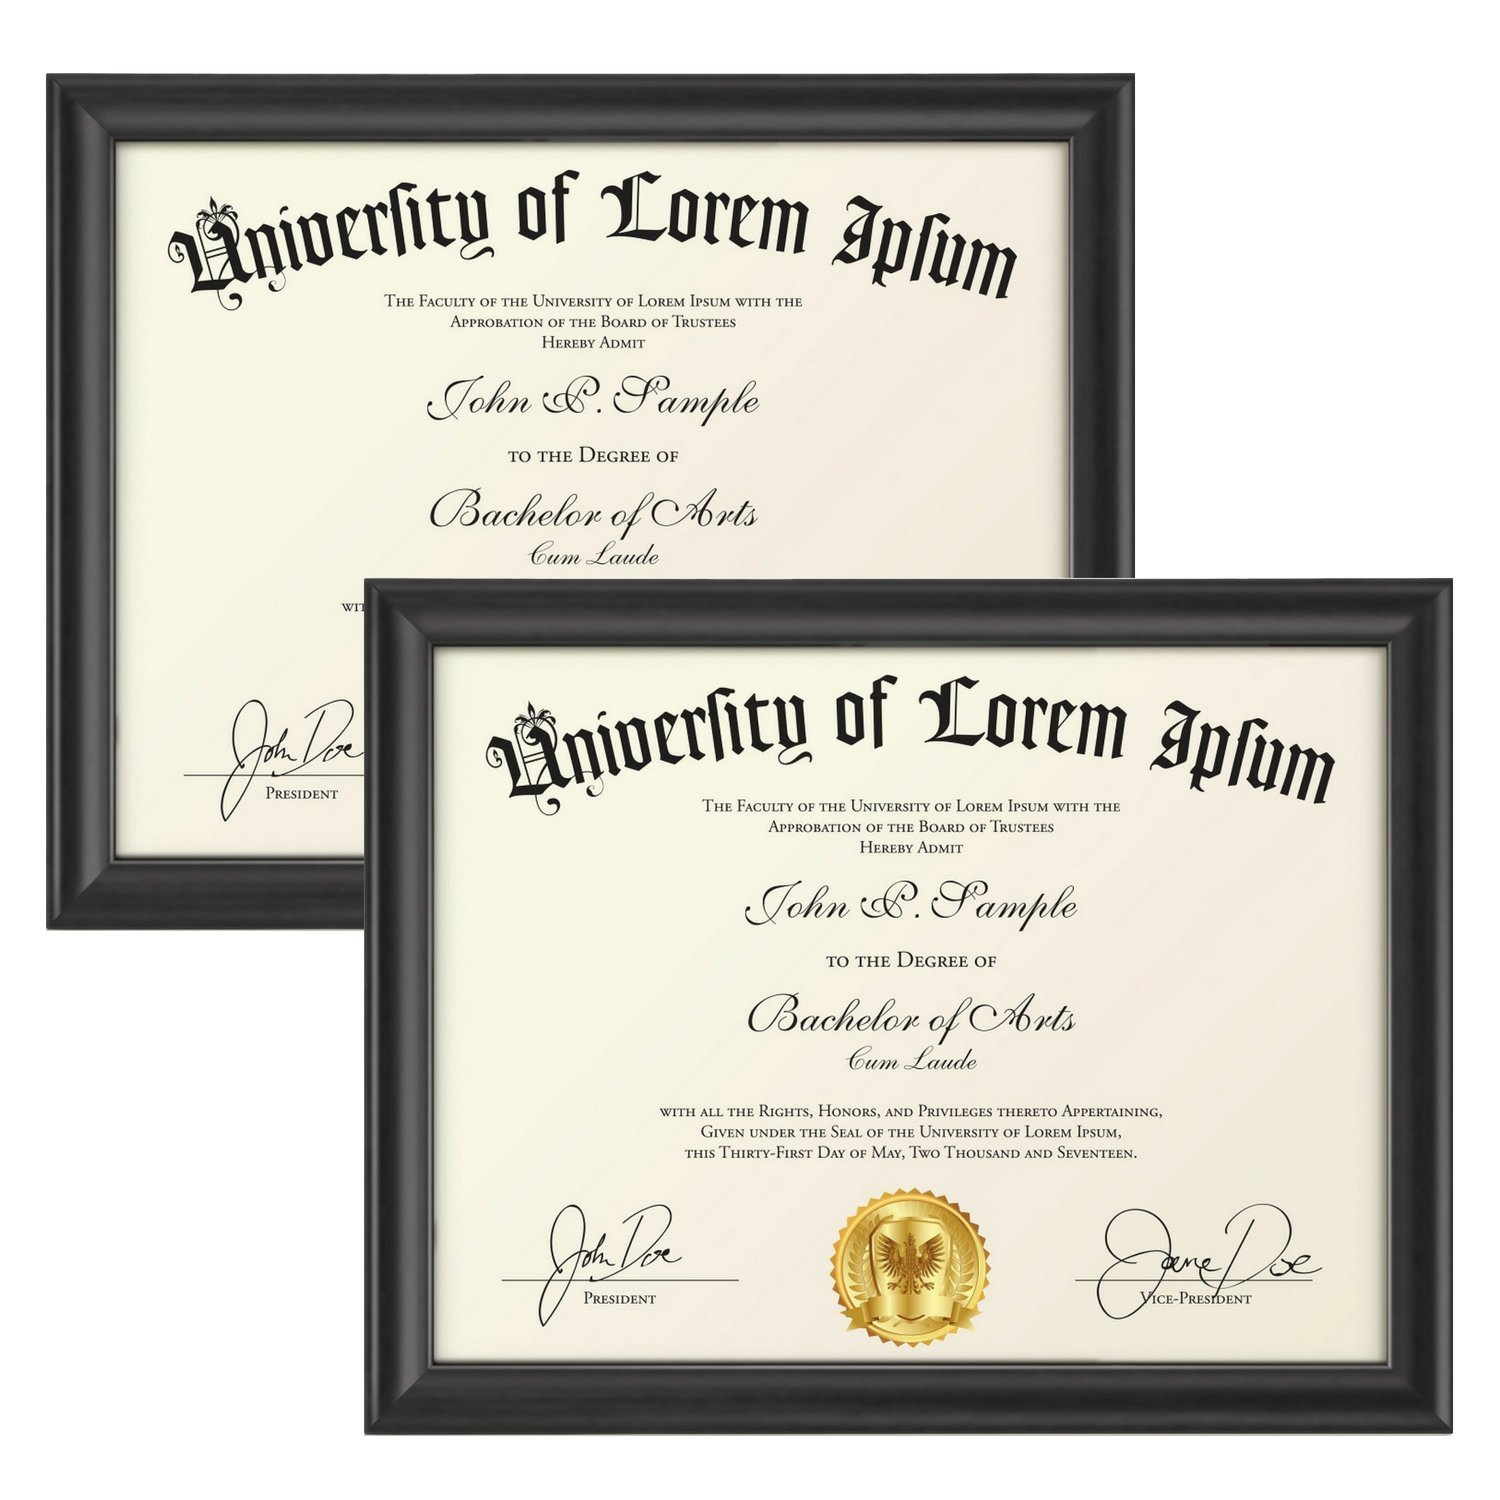 Icona Bay 8.5 by 11 Picture Frames 2 Pack (8.5x11, Matte Black) Wood Diploma Frames, Wall Hanging or Table Top, for Photo Document Certificate, Landscape as 11x8.5 or Portrait, Lakeland Collection